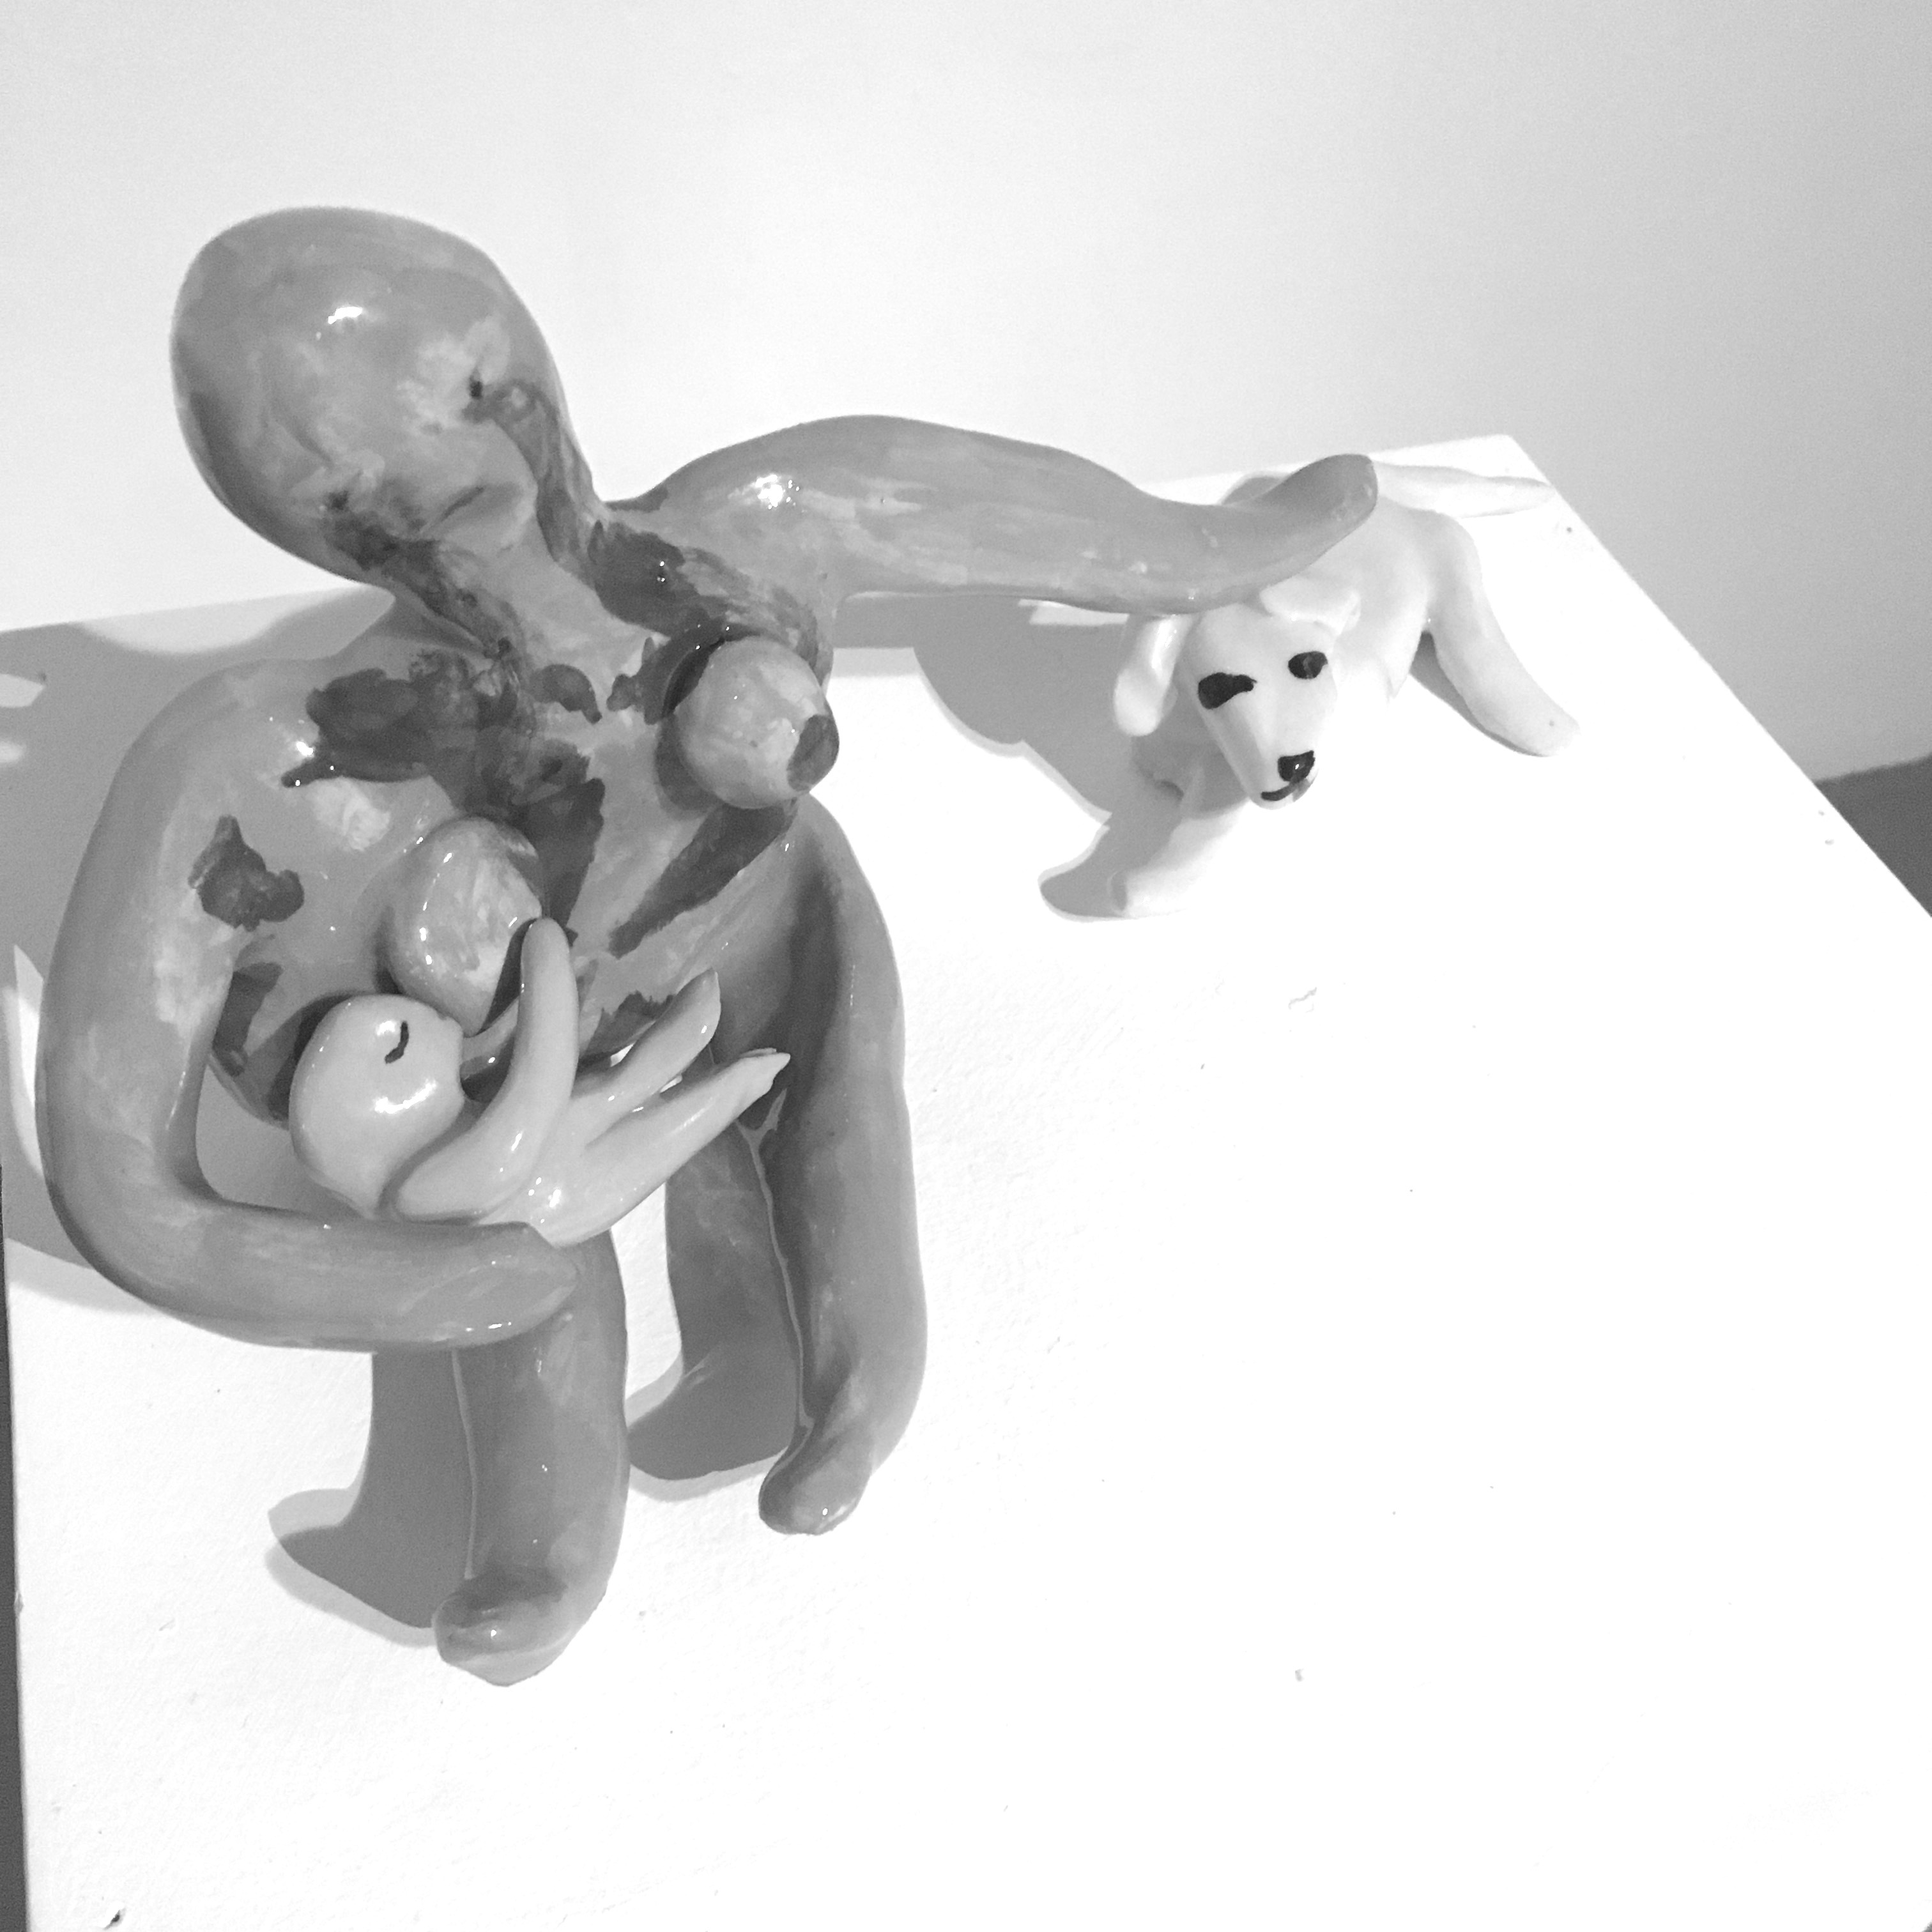 A clay figure of a woman holding a baby as she breastfeeds and pets a clay dog.